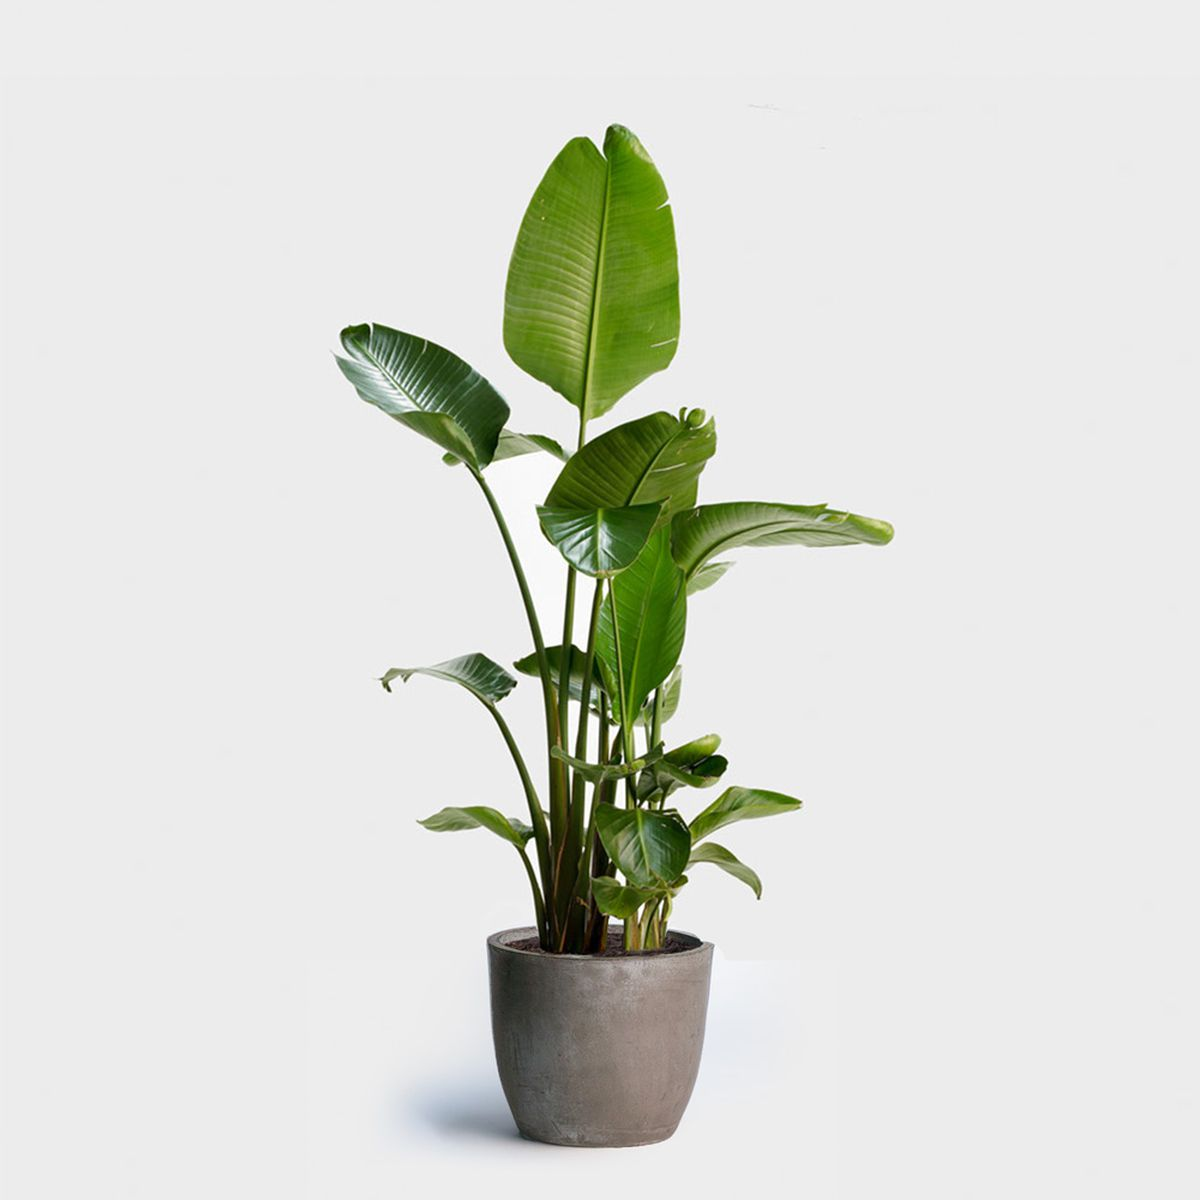 Where To Buy Indoor Plants Online Buy Indoor Plants Online At These Stores Curbed